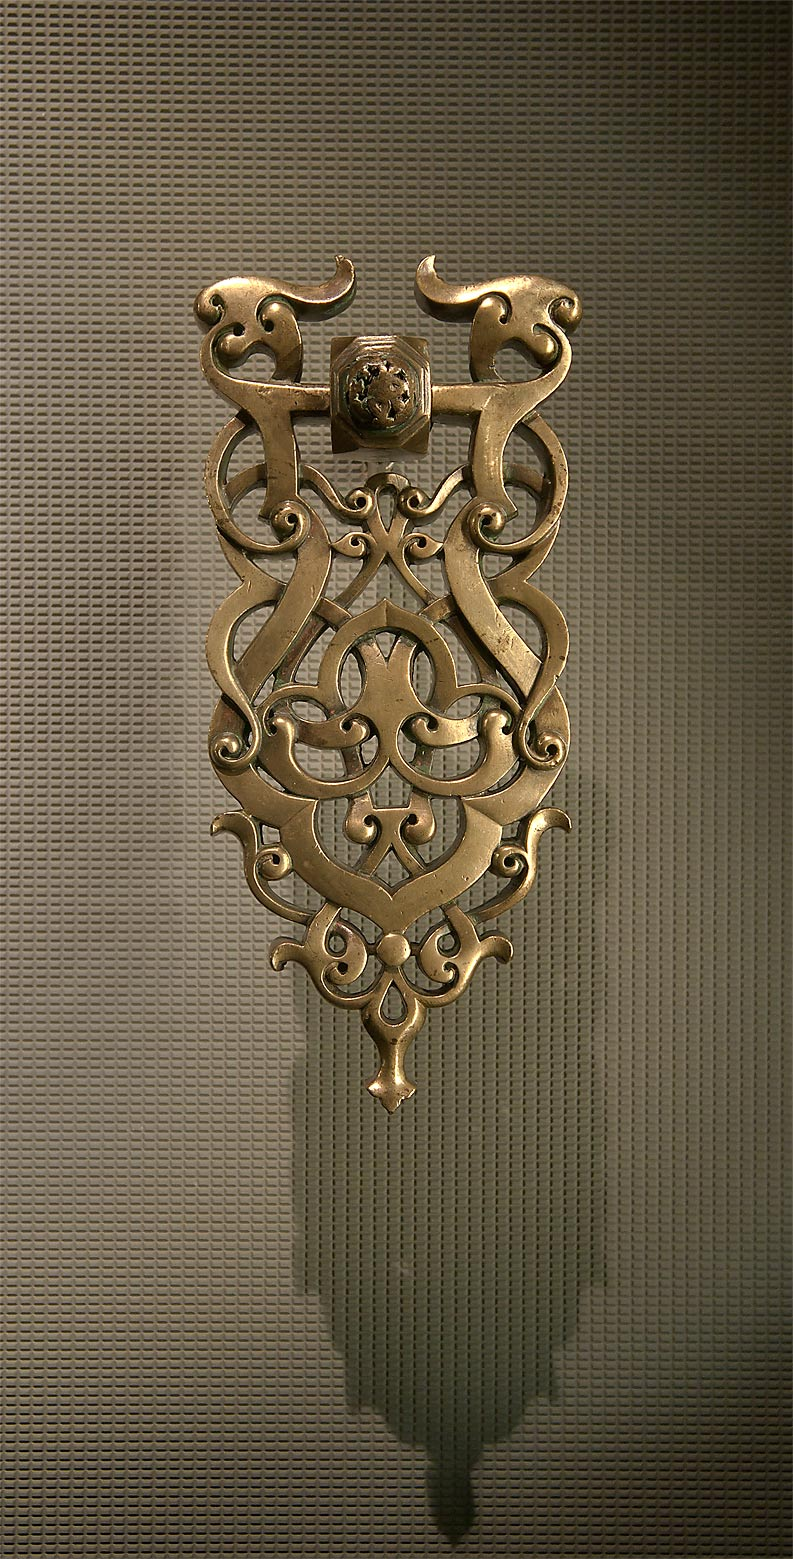 Door knocker (13th century, brass) on display in Museum of Islamic Art. Doha, Qatar